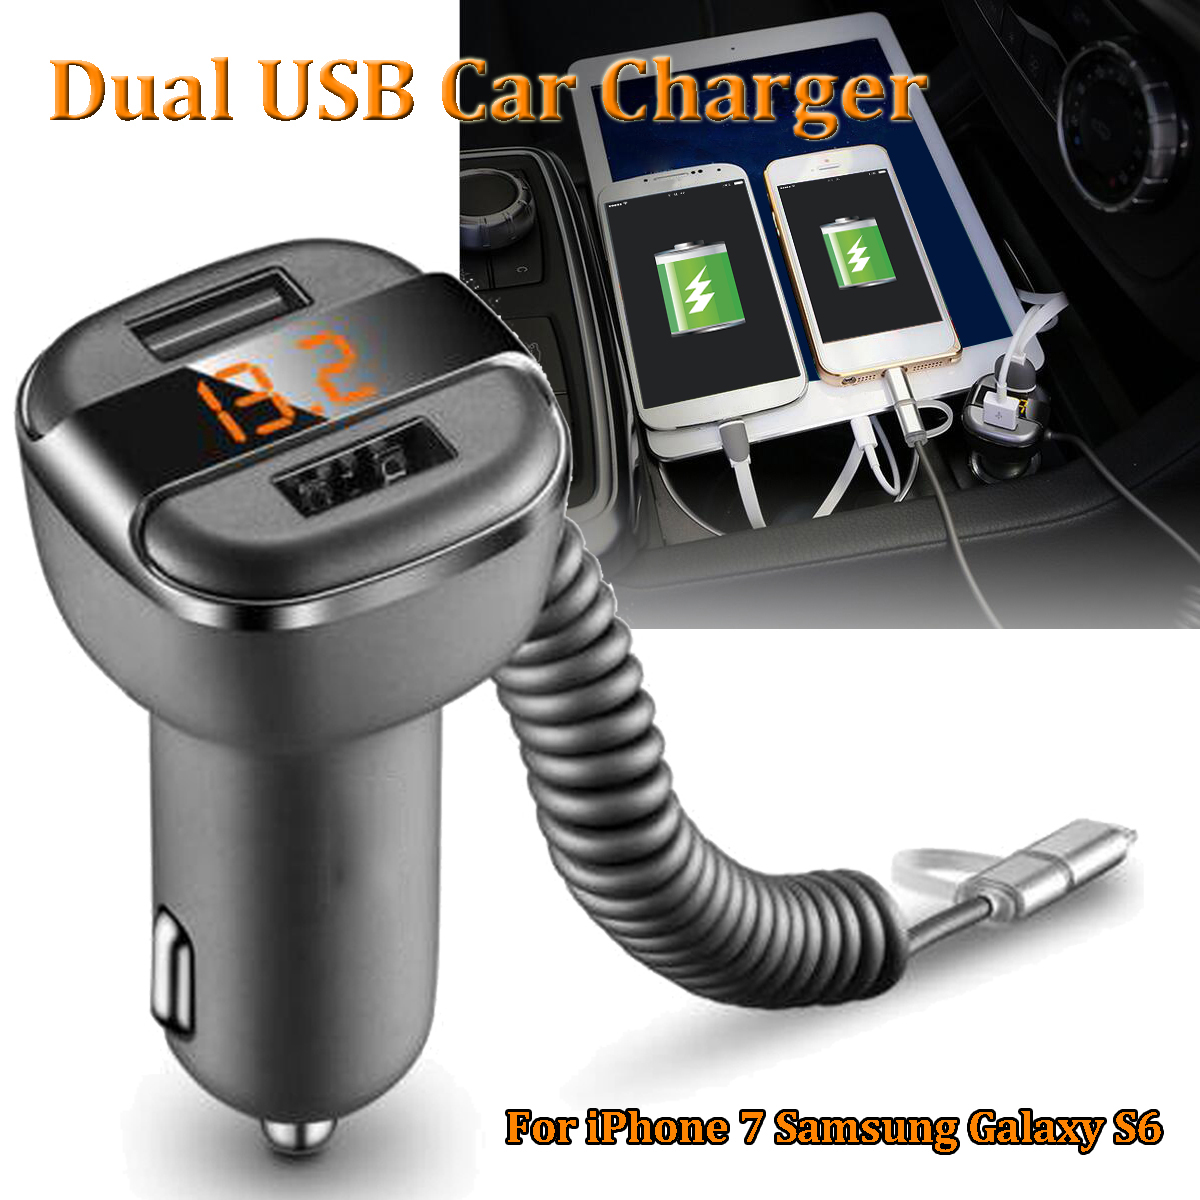 Universal 5V 3.4A Dual USB Port Car Quick Charger Adapter Multifunction LED Display Charger for Phone for Samsung